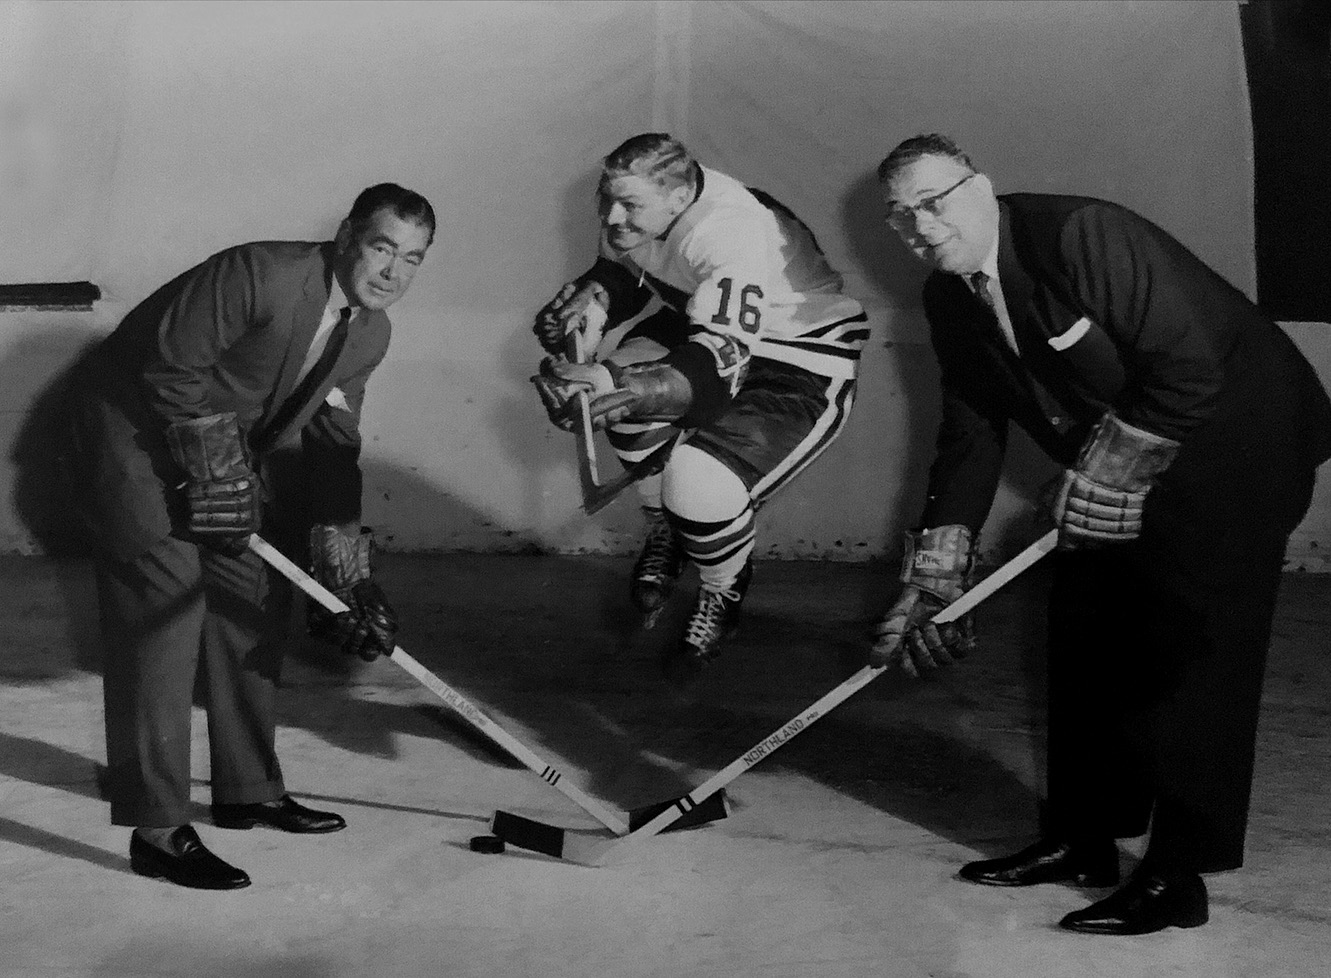 Arthur ( right ) with partner Jimmy Norris. In between them, superstar player Bobby Hull clowns around in his original number 16 jersey from his first few years with the Blackhawks (1957 to 1961). Hull later switched to number 7 and again to the now-retired number 9 as a tribute to his idol Gordie Howe.